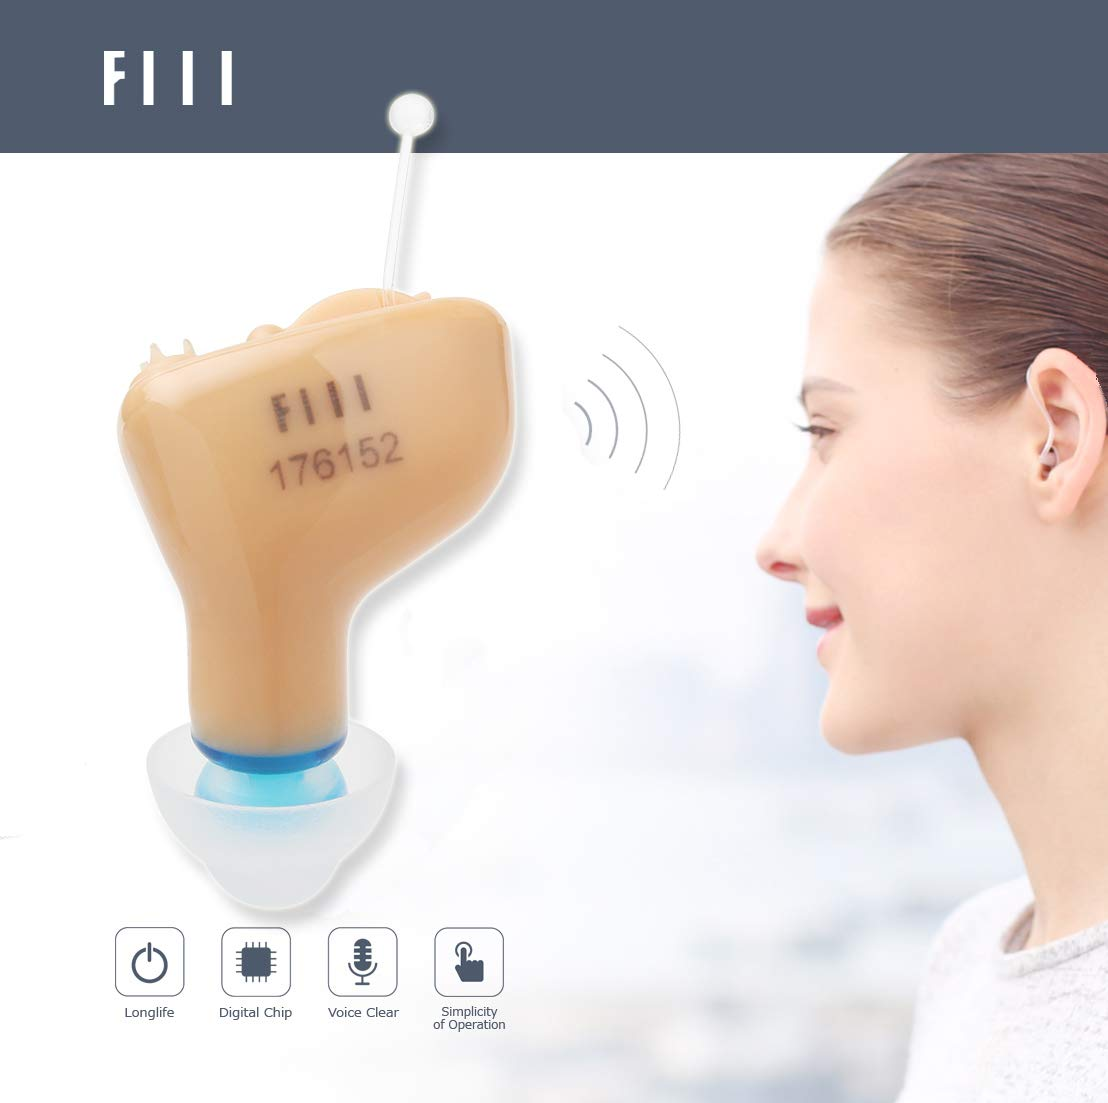 FIIL Hearing Amplifier Mini Sound Amplifier in Ear Almost Invisible Battery A10 (Left Ear)